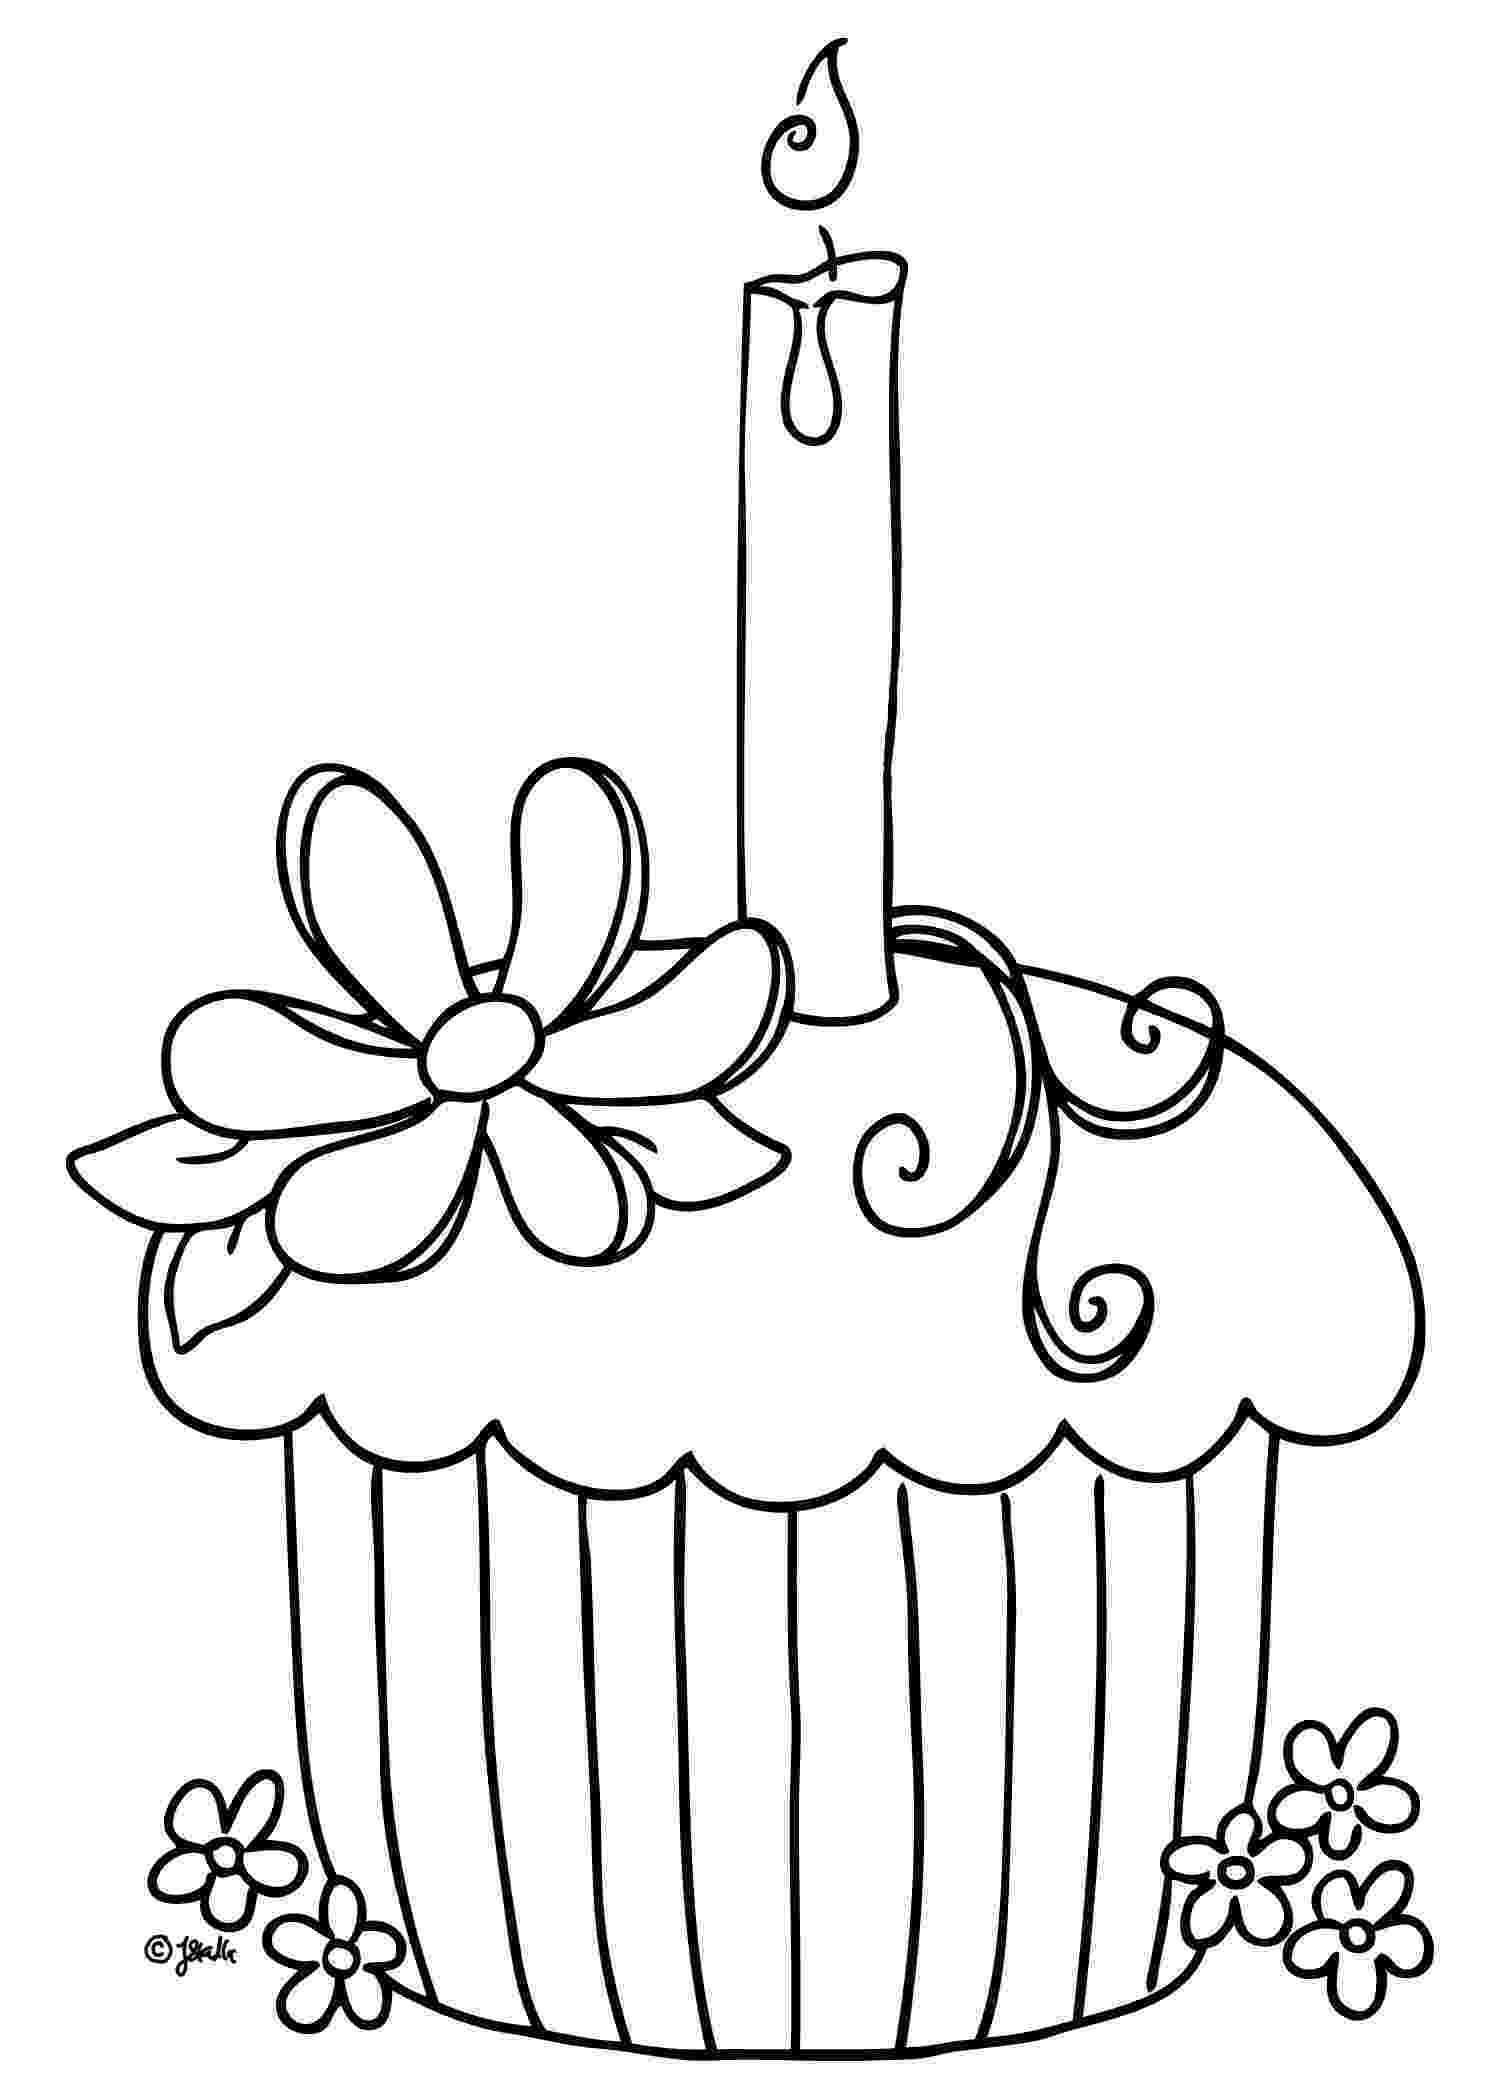 coloring pages cupcakes free printable cupcake coloring pages for kids cool2bkids cupcakes coloring pages